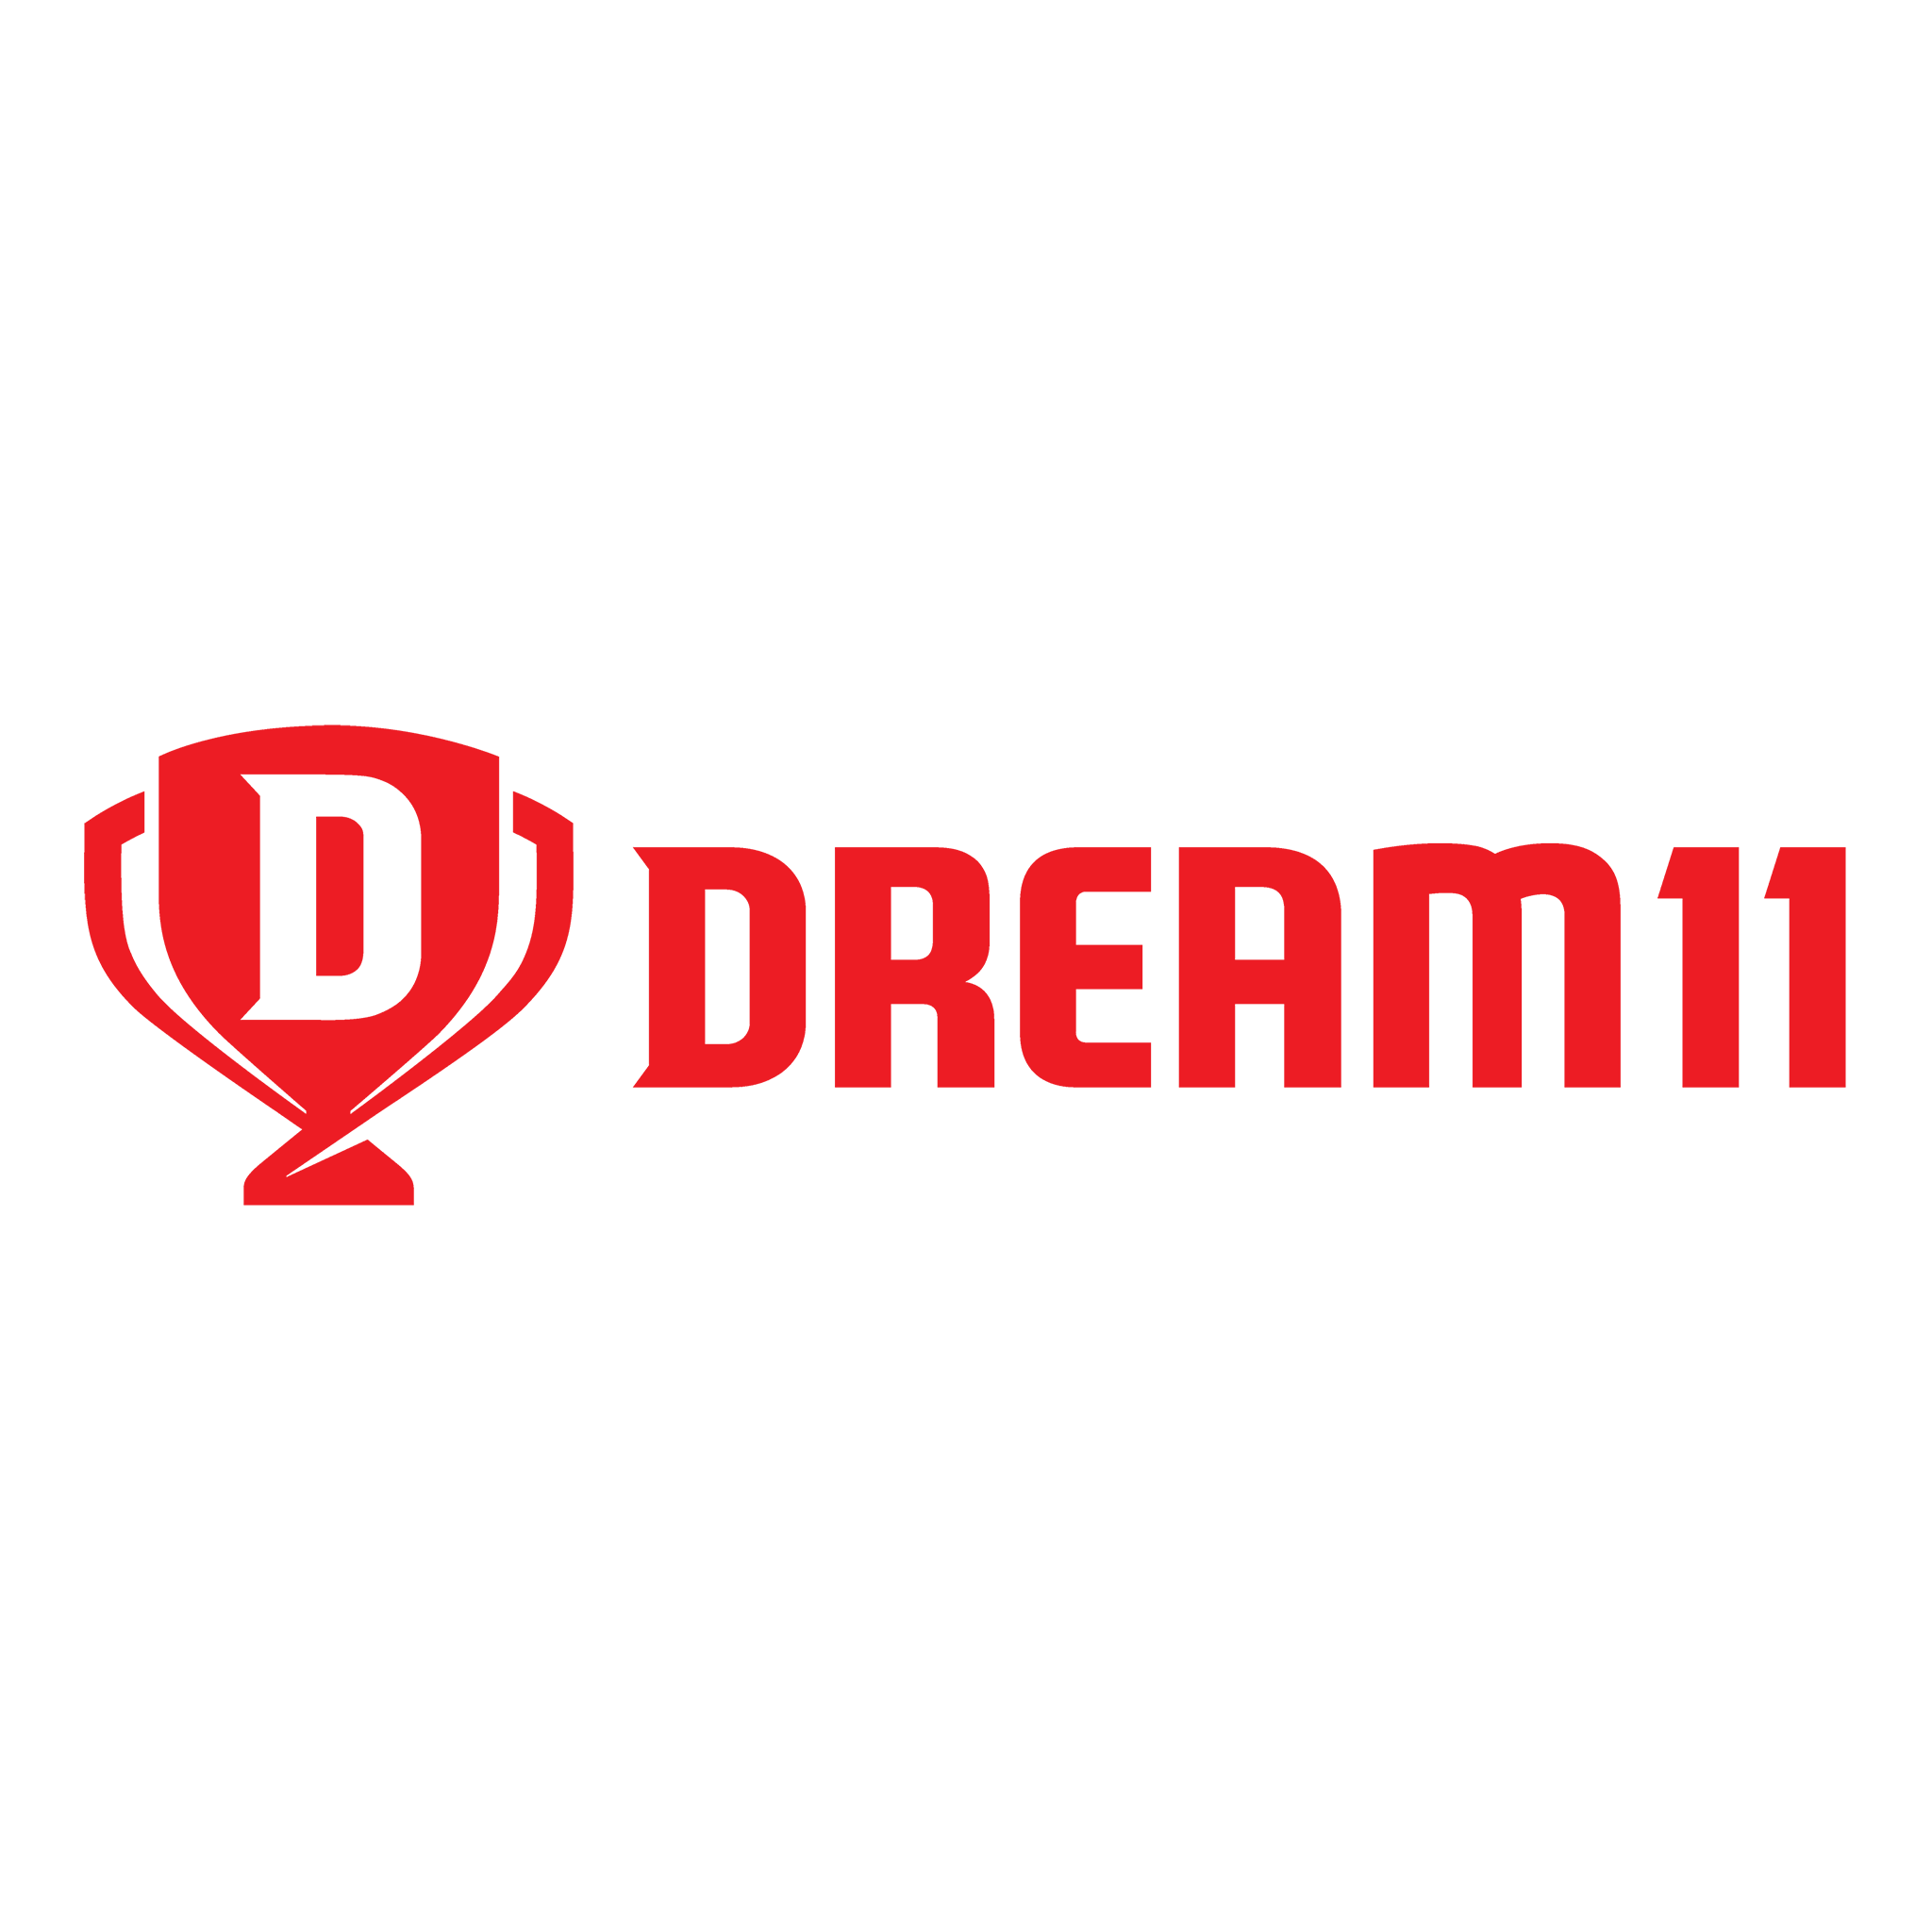 Dream11 IPL Business Model